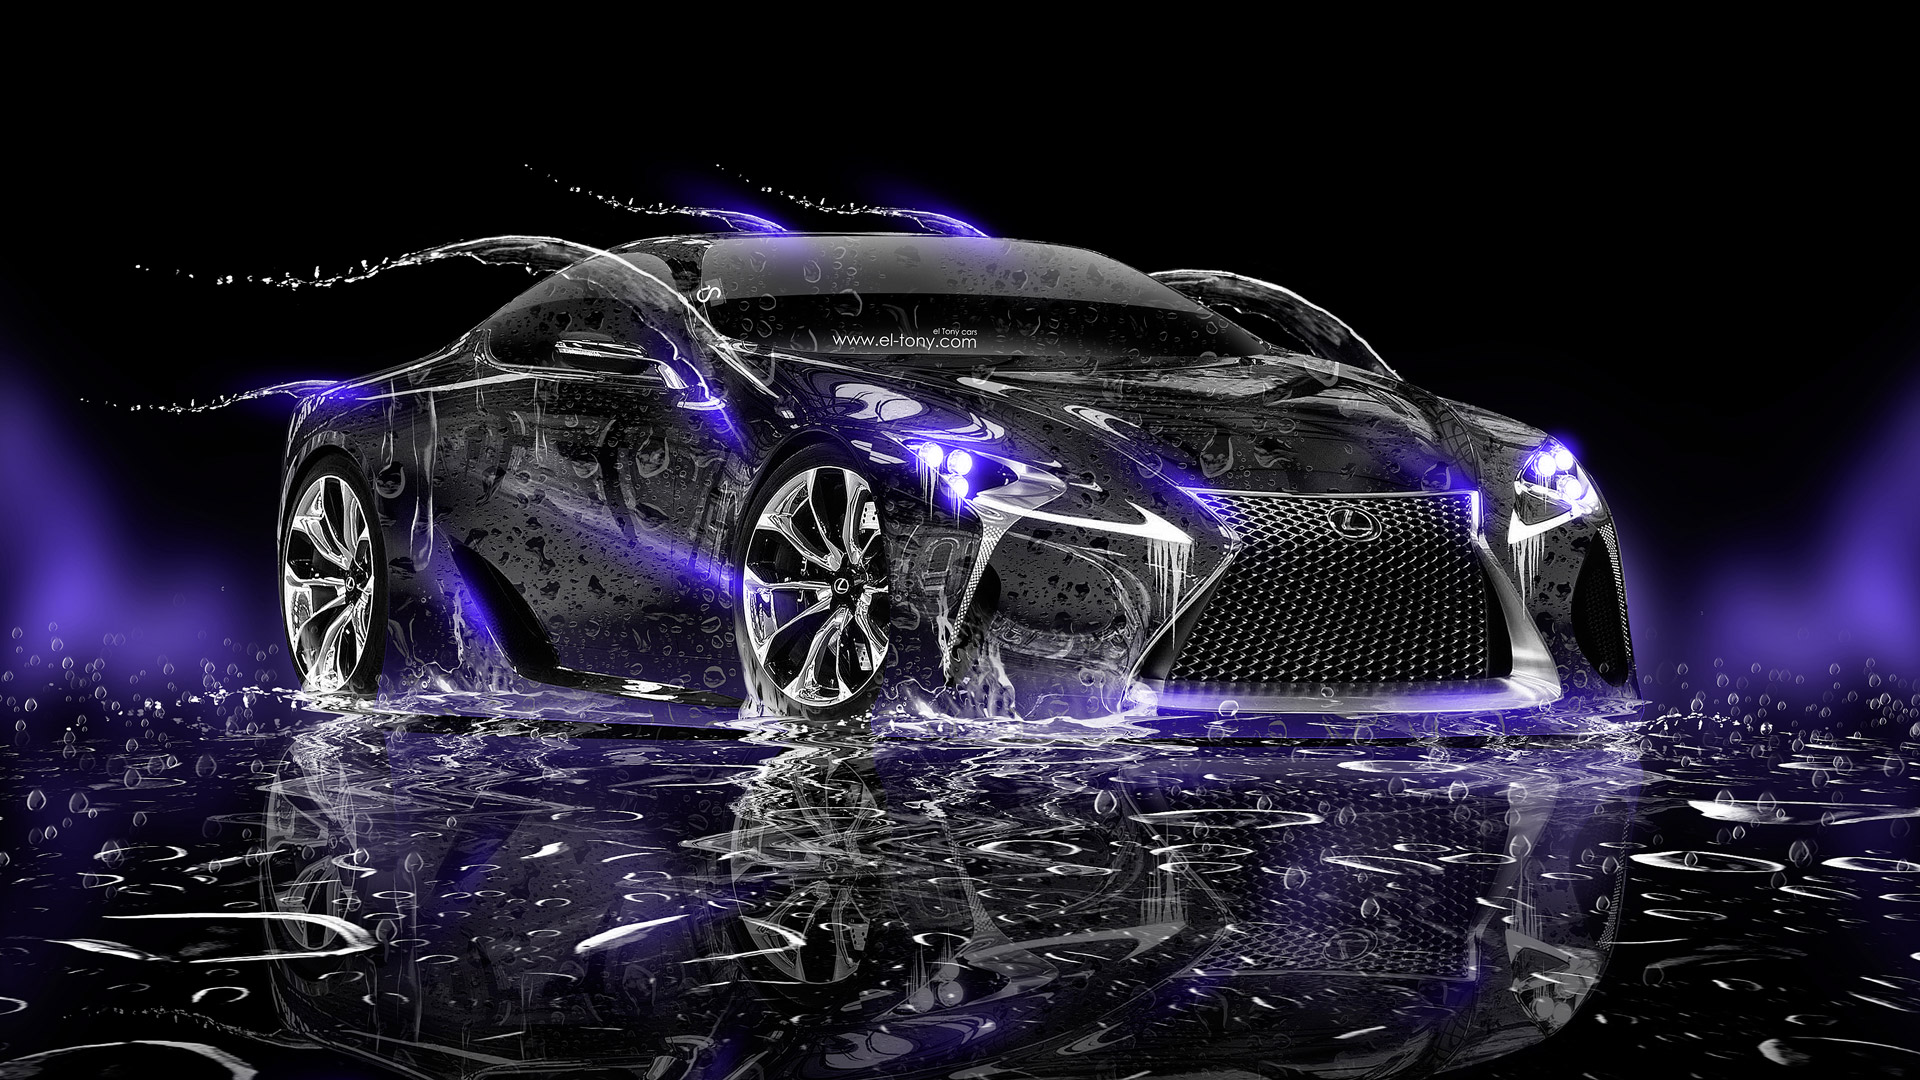 Lexus Lf Lc Water Car 2014 Hd Wallpapers Violet Neon Design By Tony